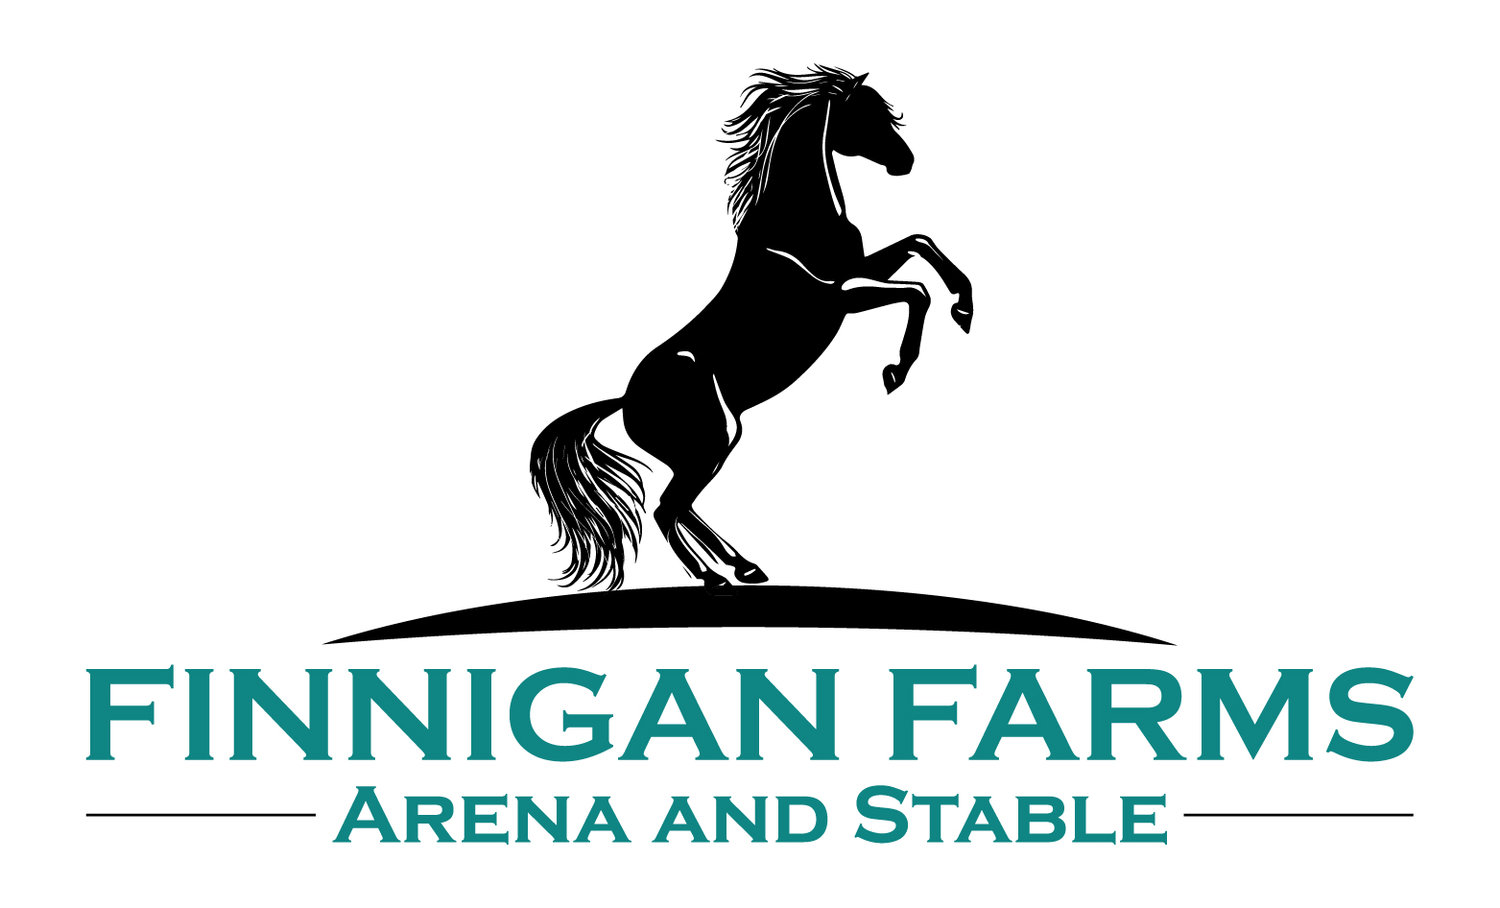 Finnigan Farms